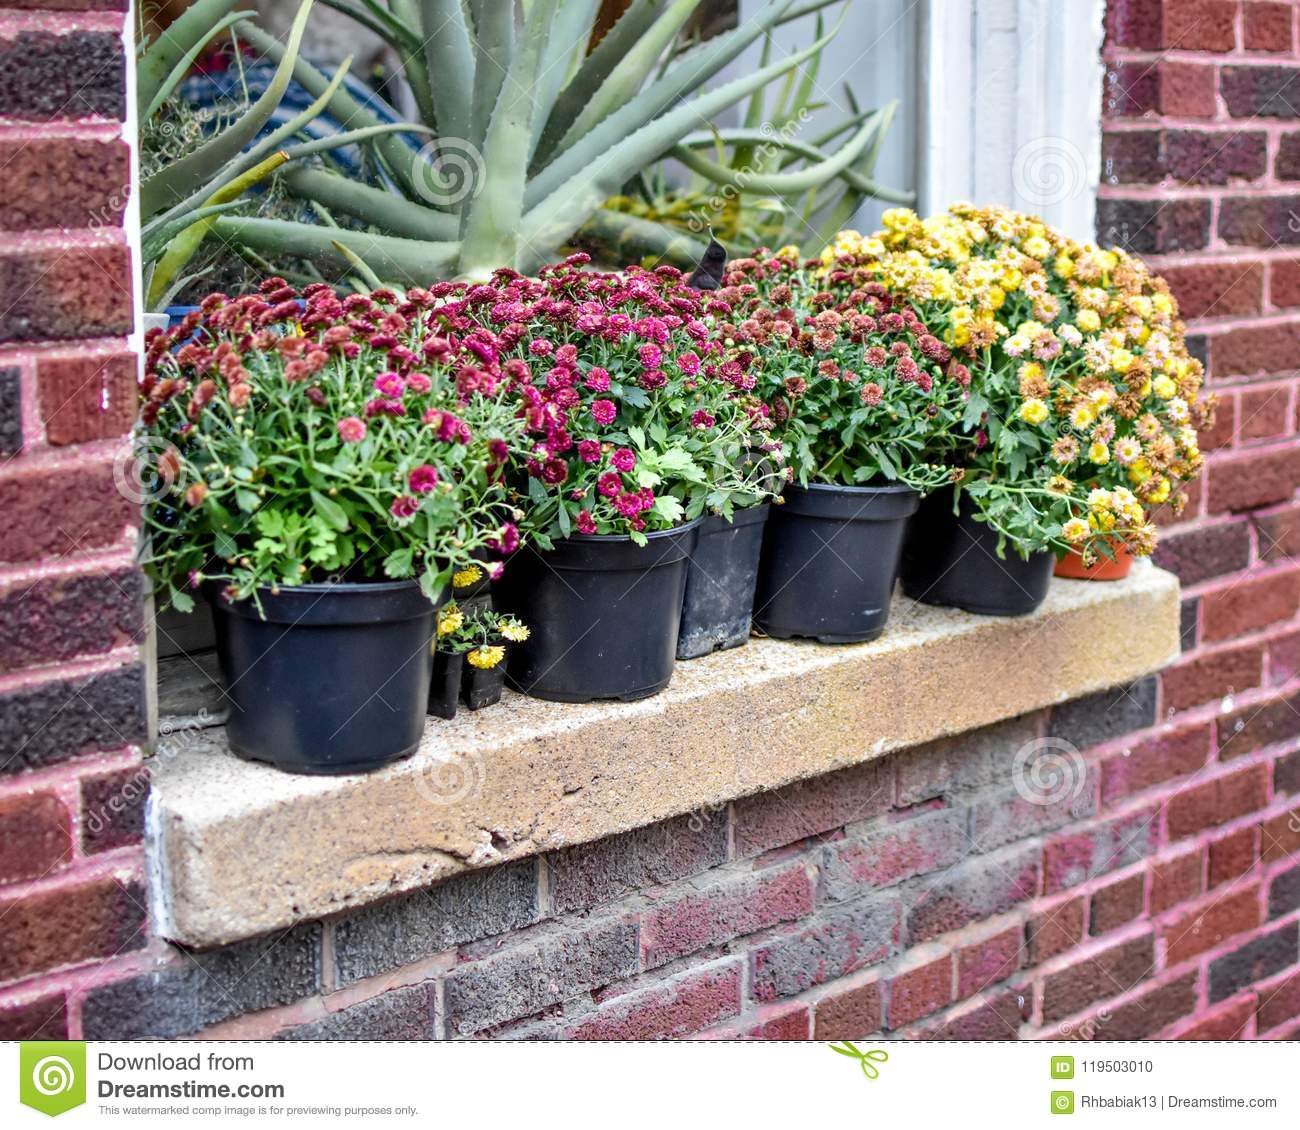 Chrysanthemum Flowers on Windowsill of Brick Building